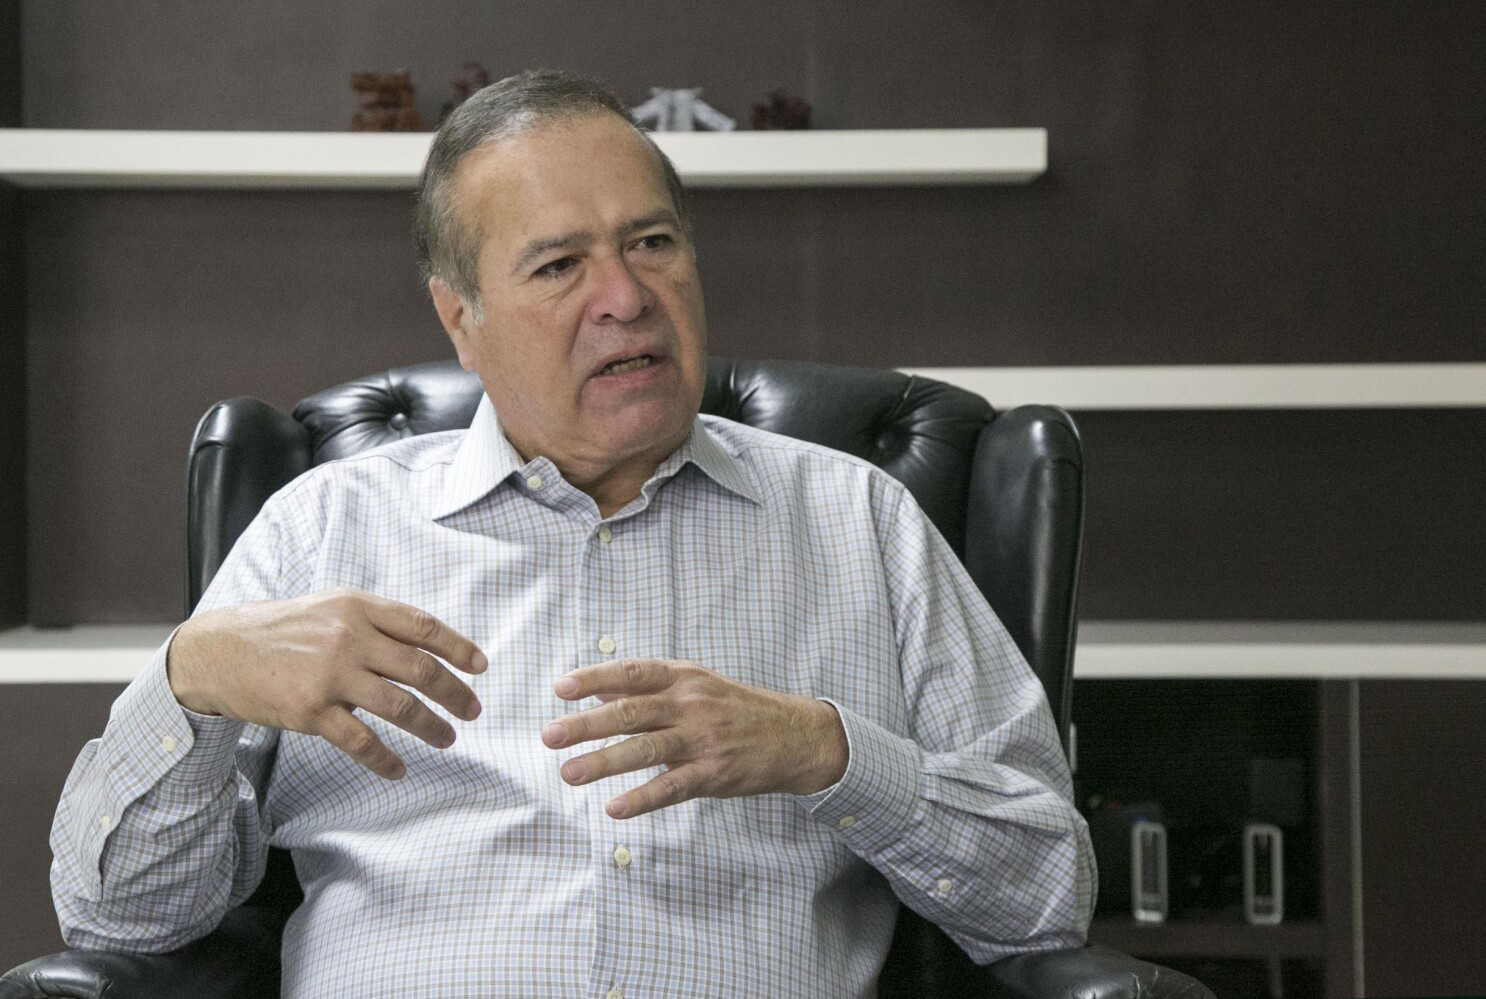 New mayor of Tijuana pledges 'open doors' and an end to corruption